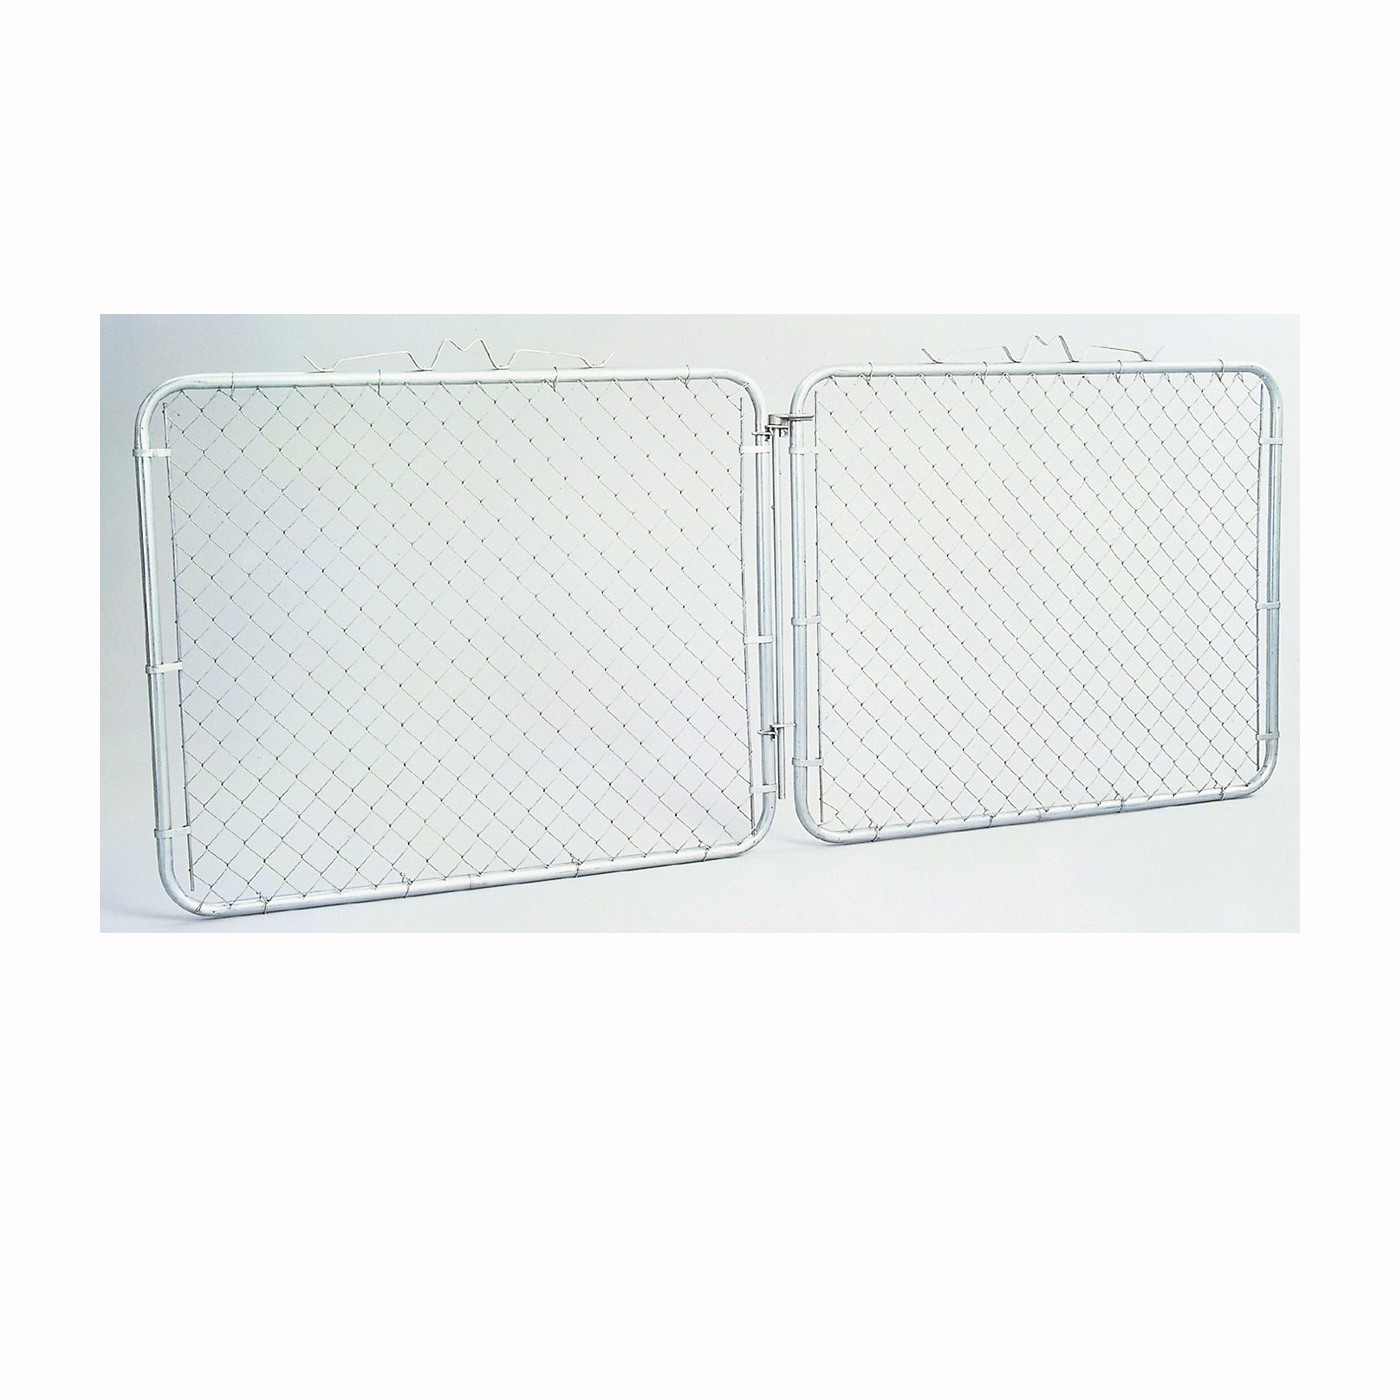 Picture of Stephens Pipe & Steel GTB12048 Chain Link Drive Gate, 10 ft W Gate, 48 in H Gate